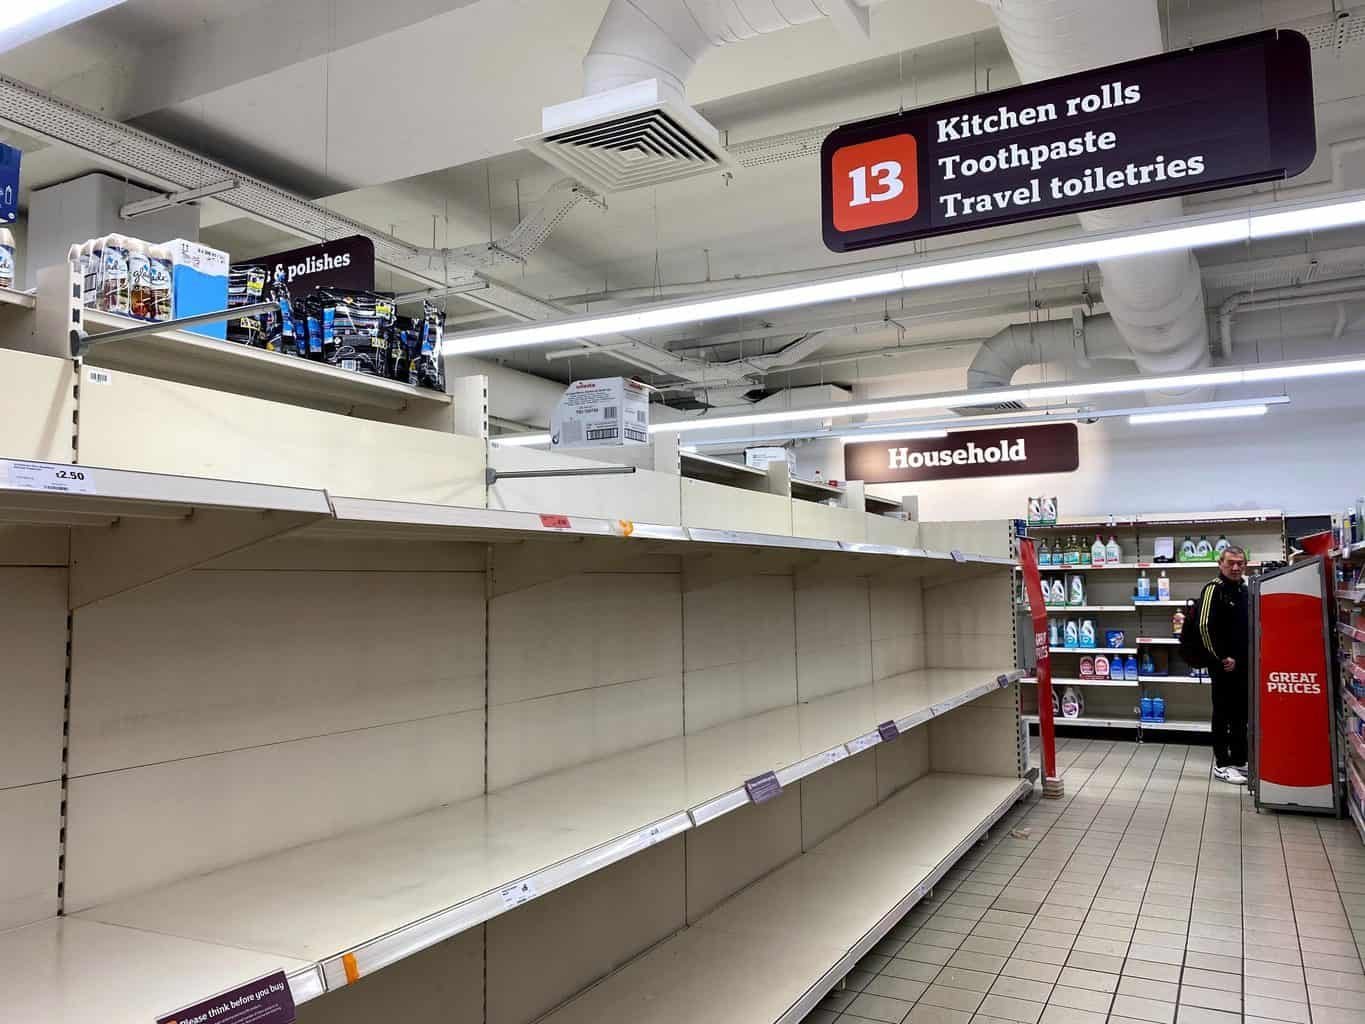 Shelves emptied of toilet paper, due to panic buying